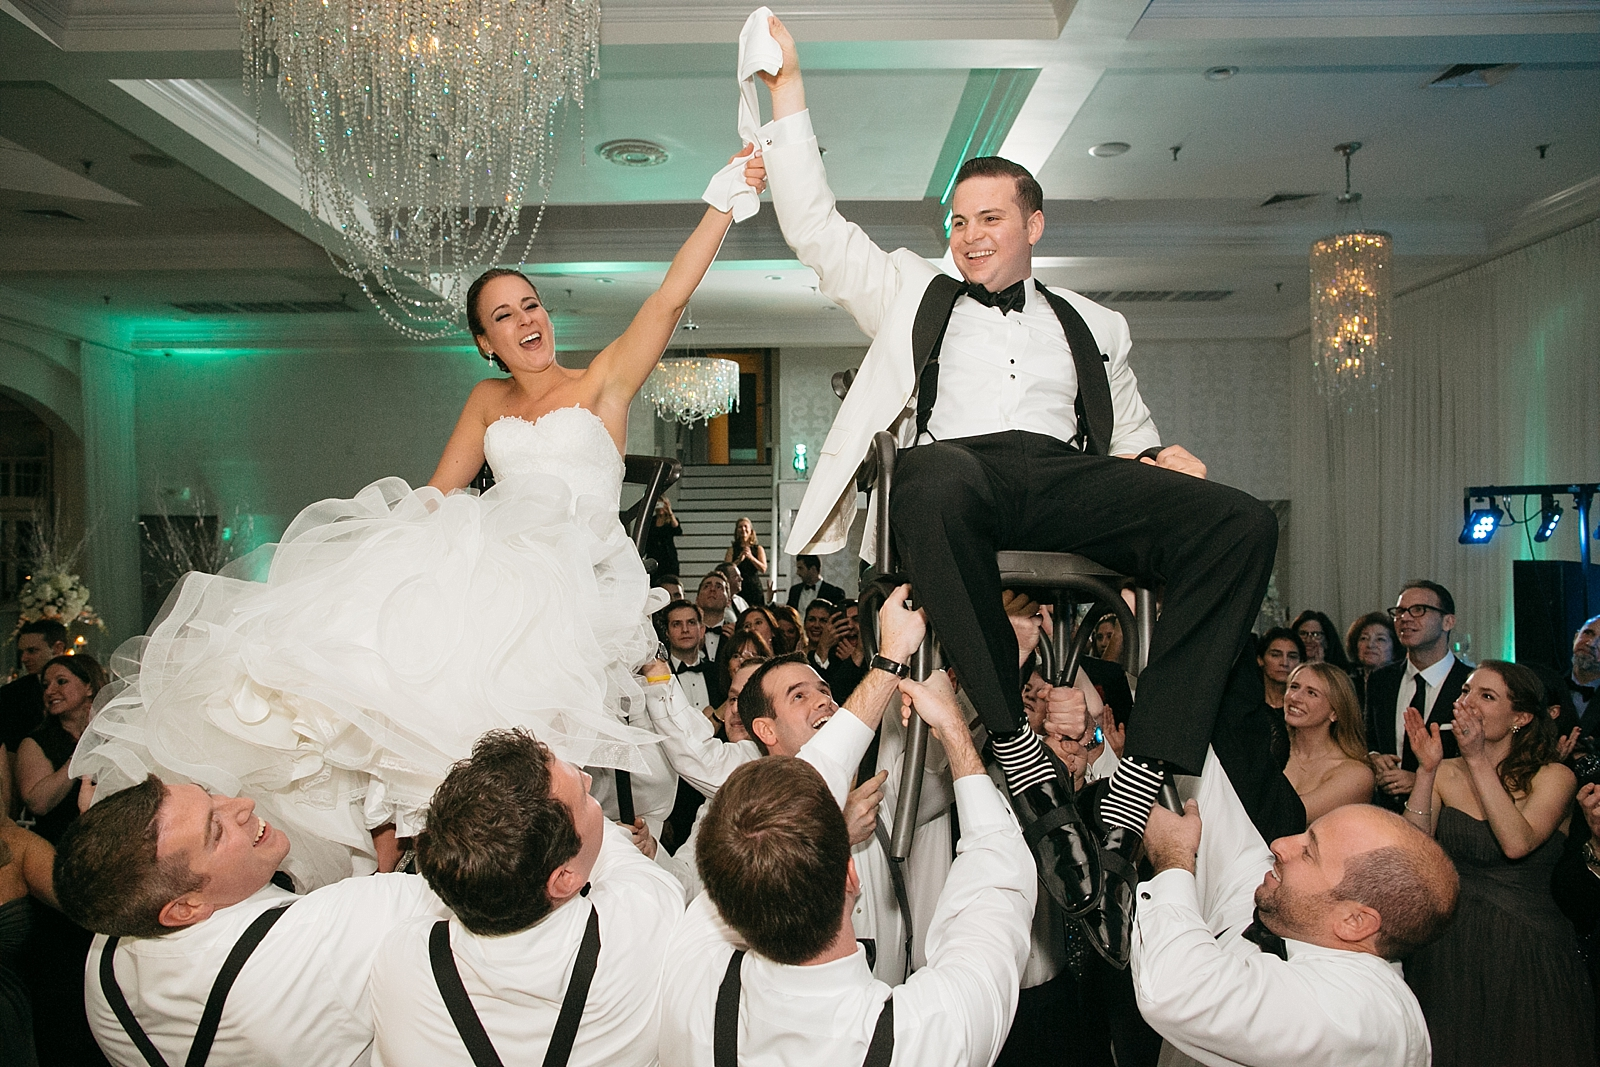 Belle Mer, Newport, Boston Weddings, Goat Island Wedding, Reception, Guests, Dancing, Band